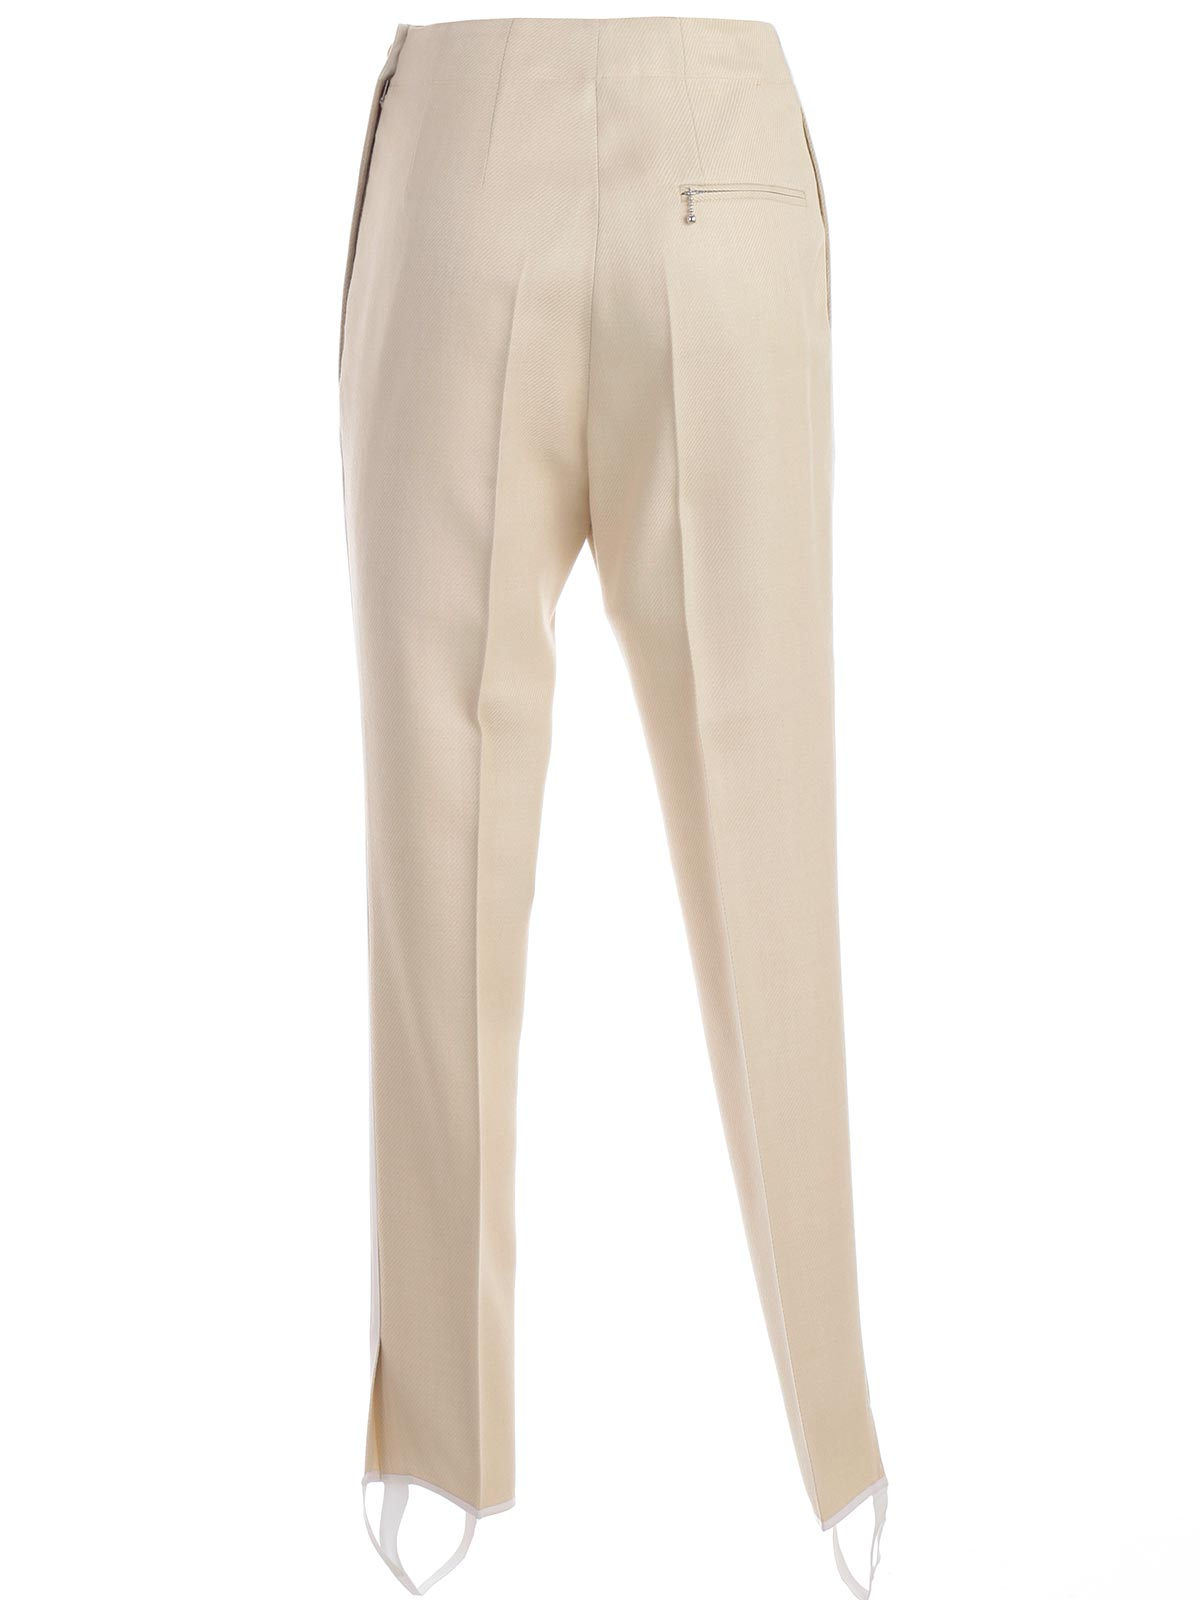 Picture of Golden Goose Deluxe Brand Trousers